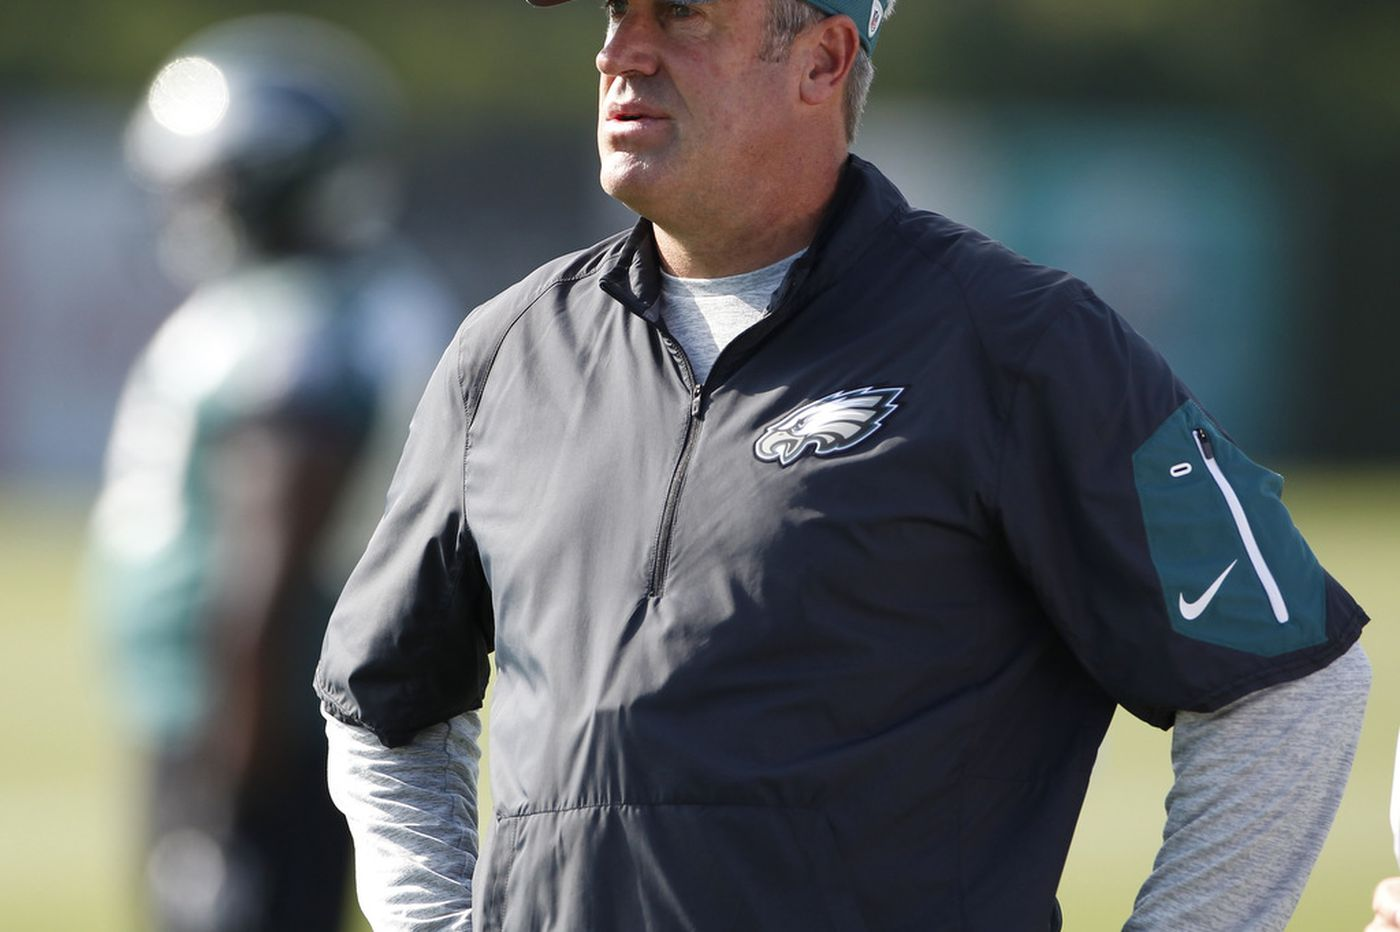 Doug Pederson says Eagles are on schedule despite his 10-day COVID-19 absence